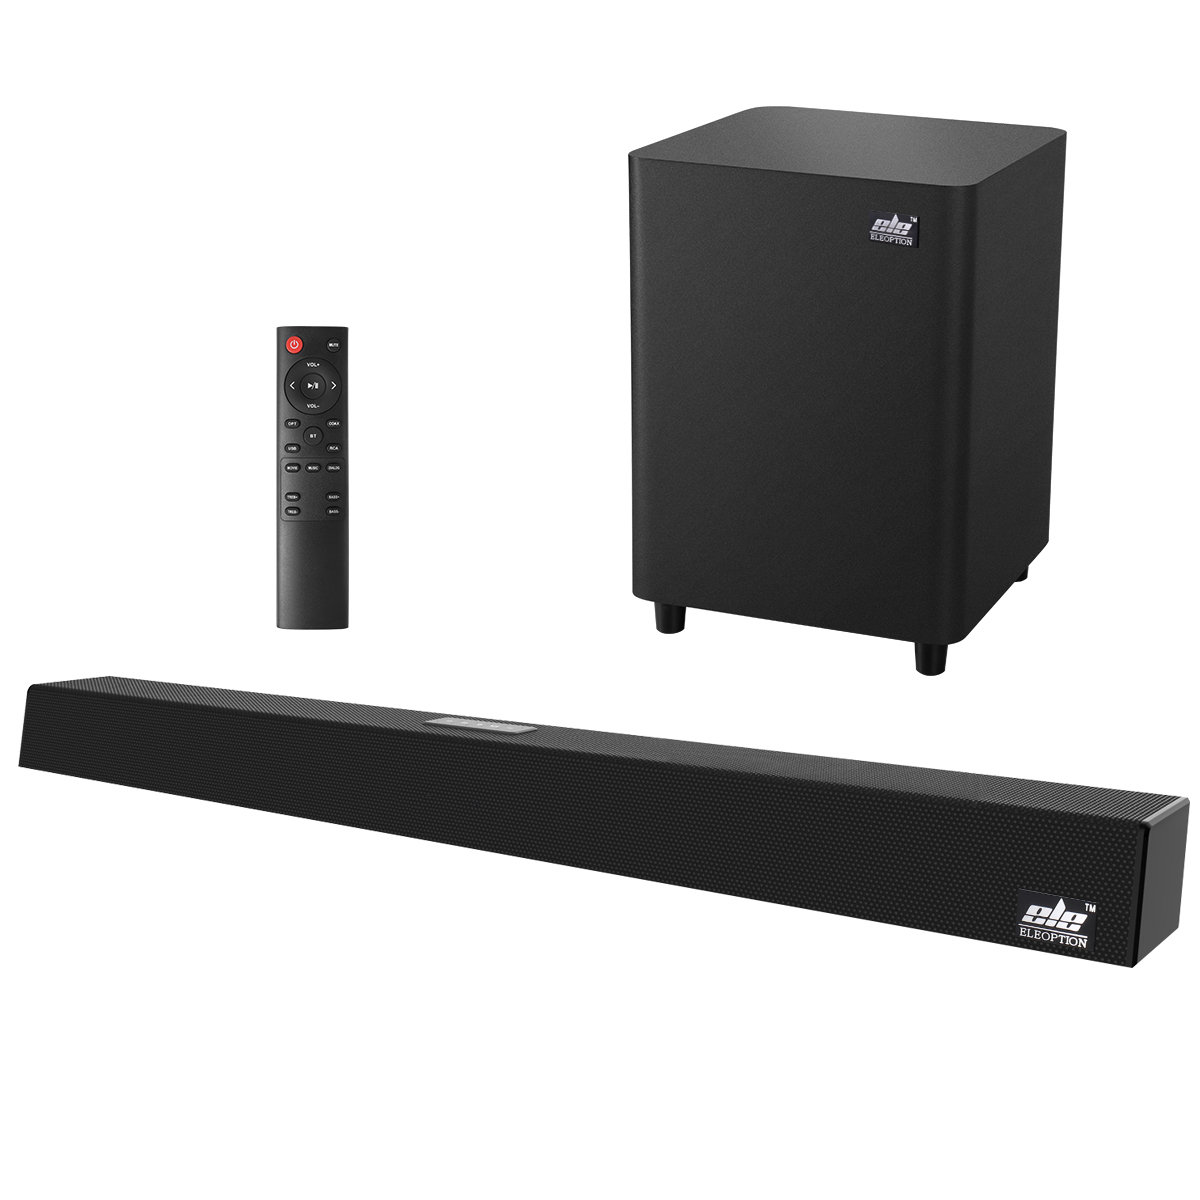 120W Home Theater Sound System Soundbar 2.1 TV Bluetooth Speaker Support Optical AUX Coaxial Sound Bar Subwoofer Speakers For TV